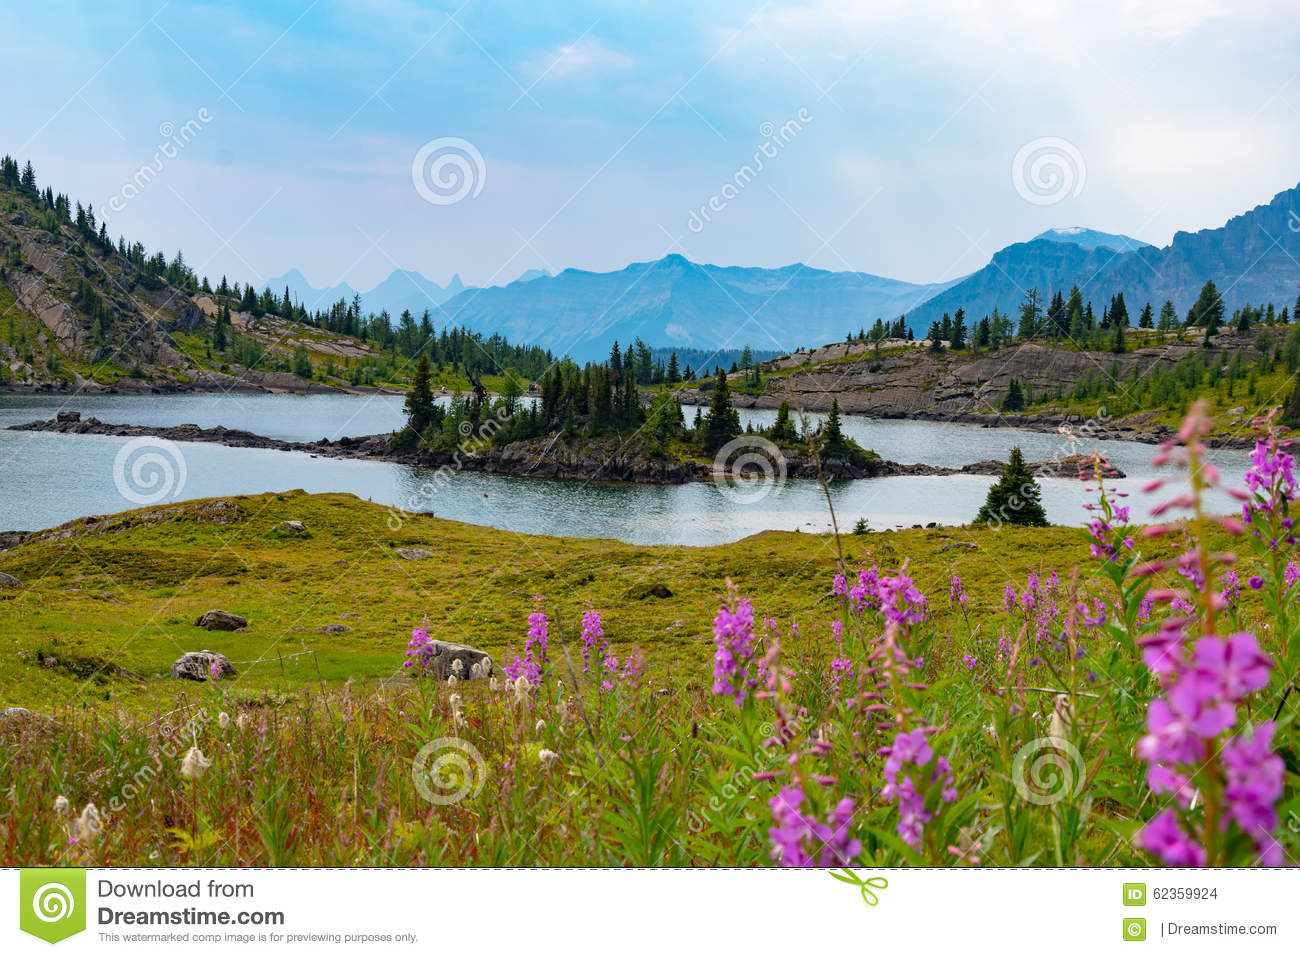 Alpine lake and mountains in sunshine meadows, Alberta